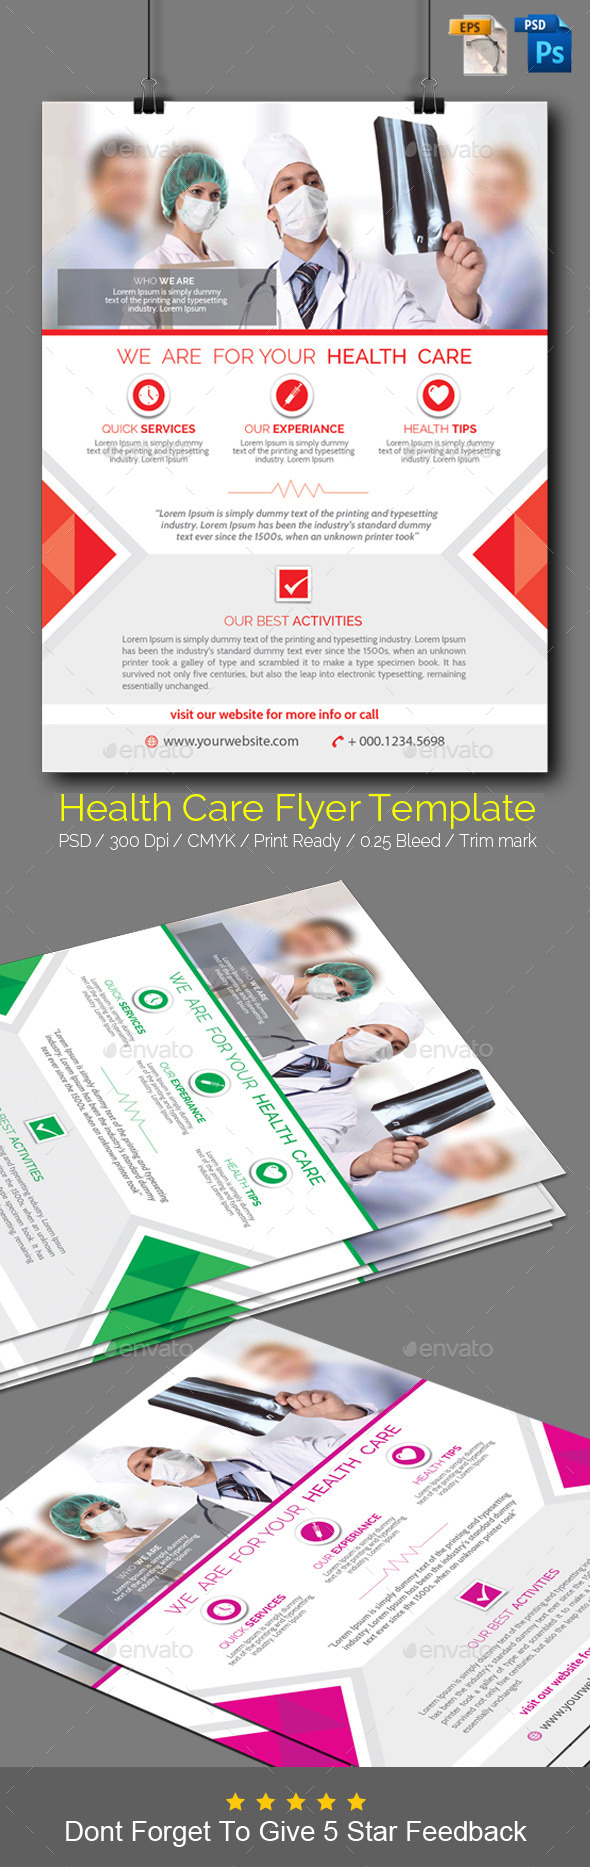 Health Care Flyer Template  - Flyers Print Templates